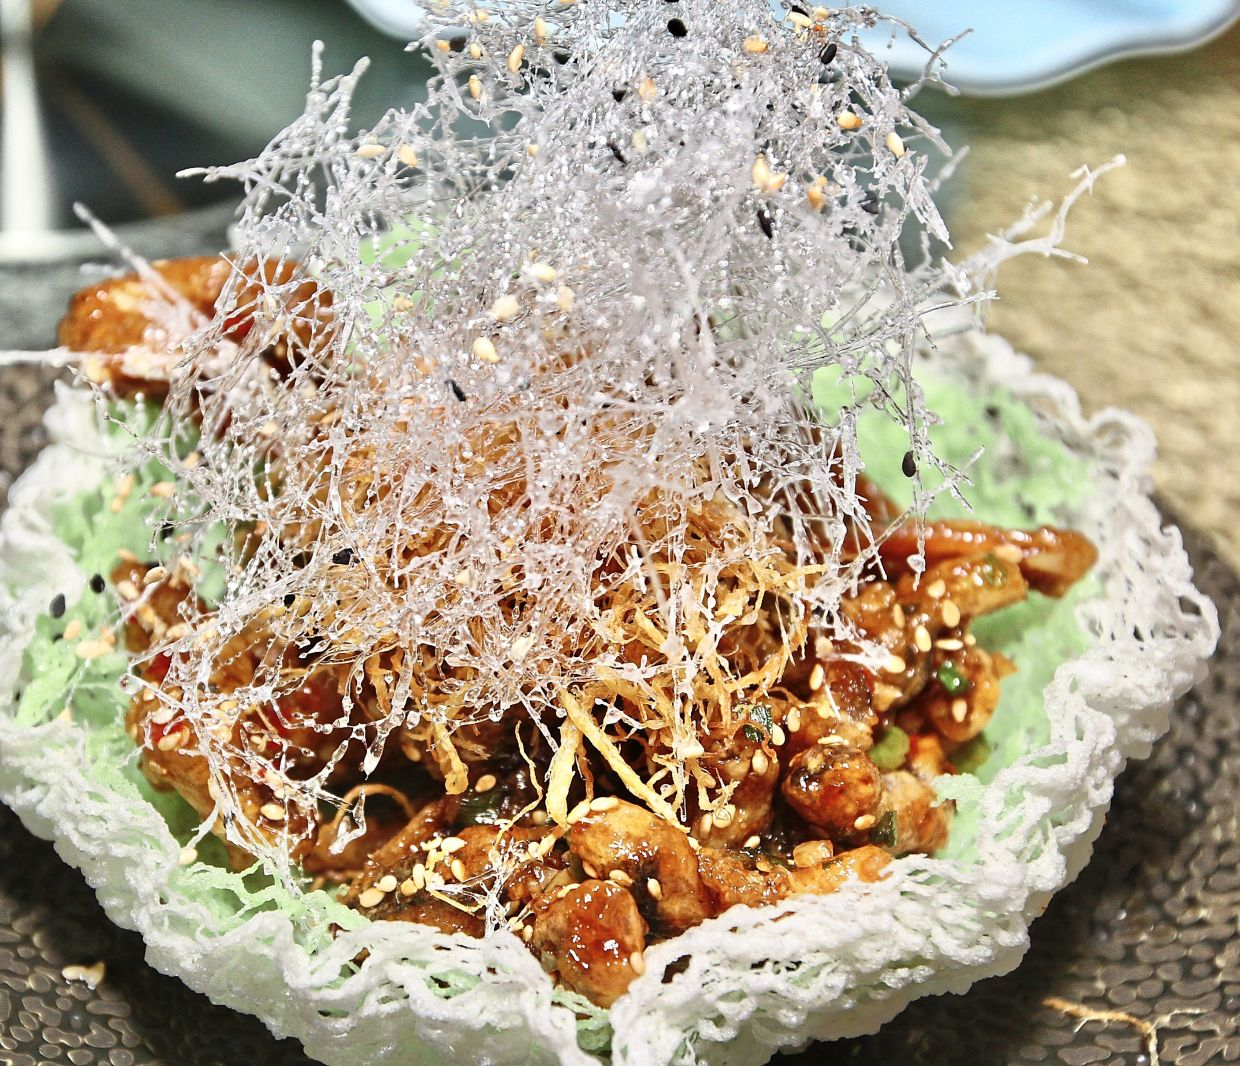 The crispy and savoury Suzhou Style Crispy Eel is a delight.